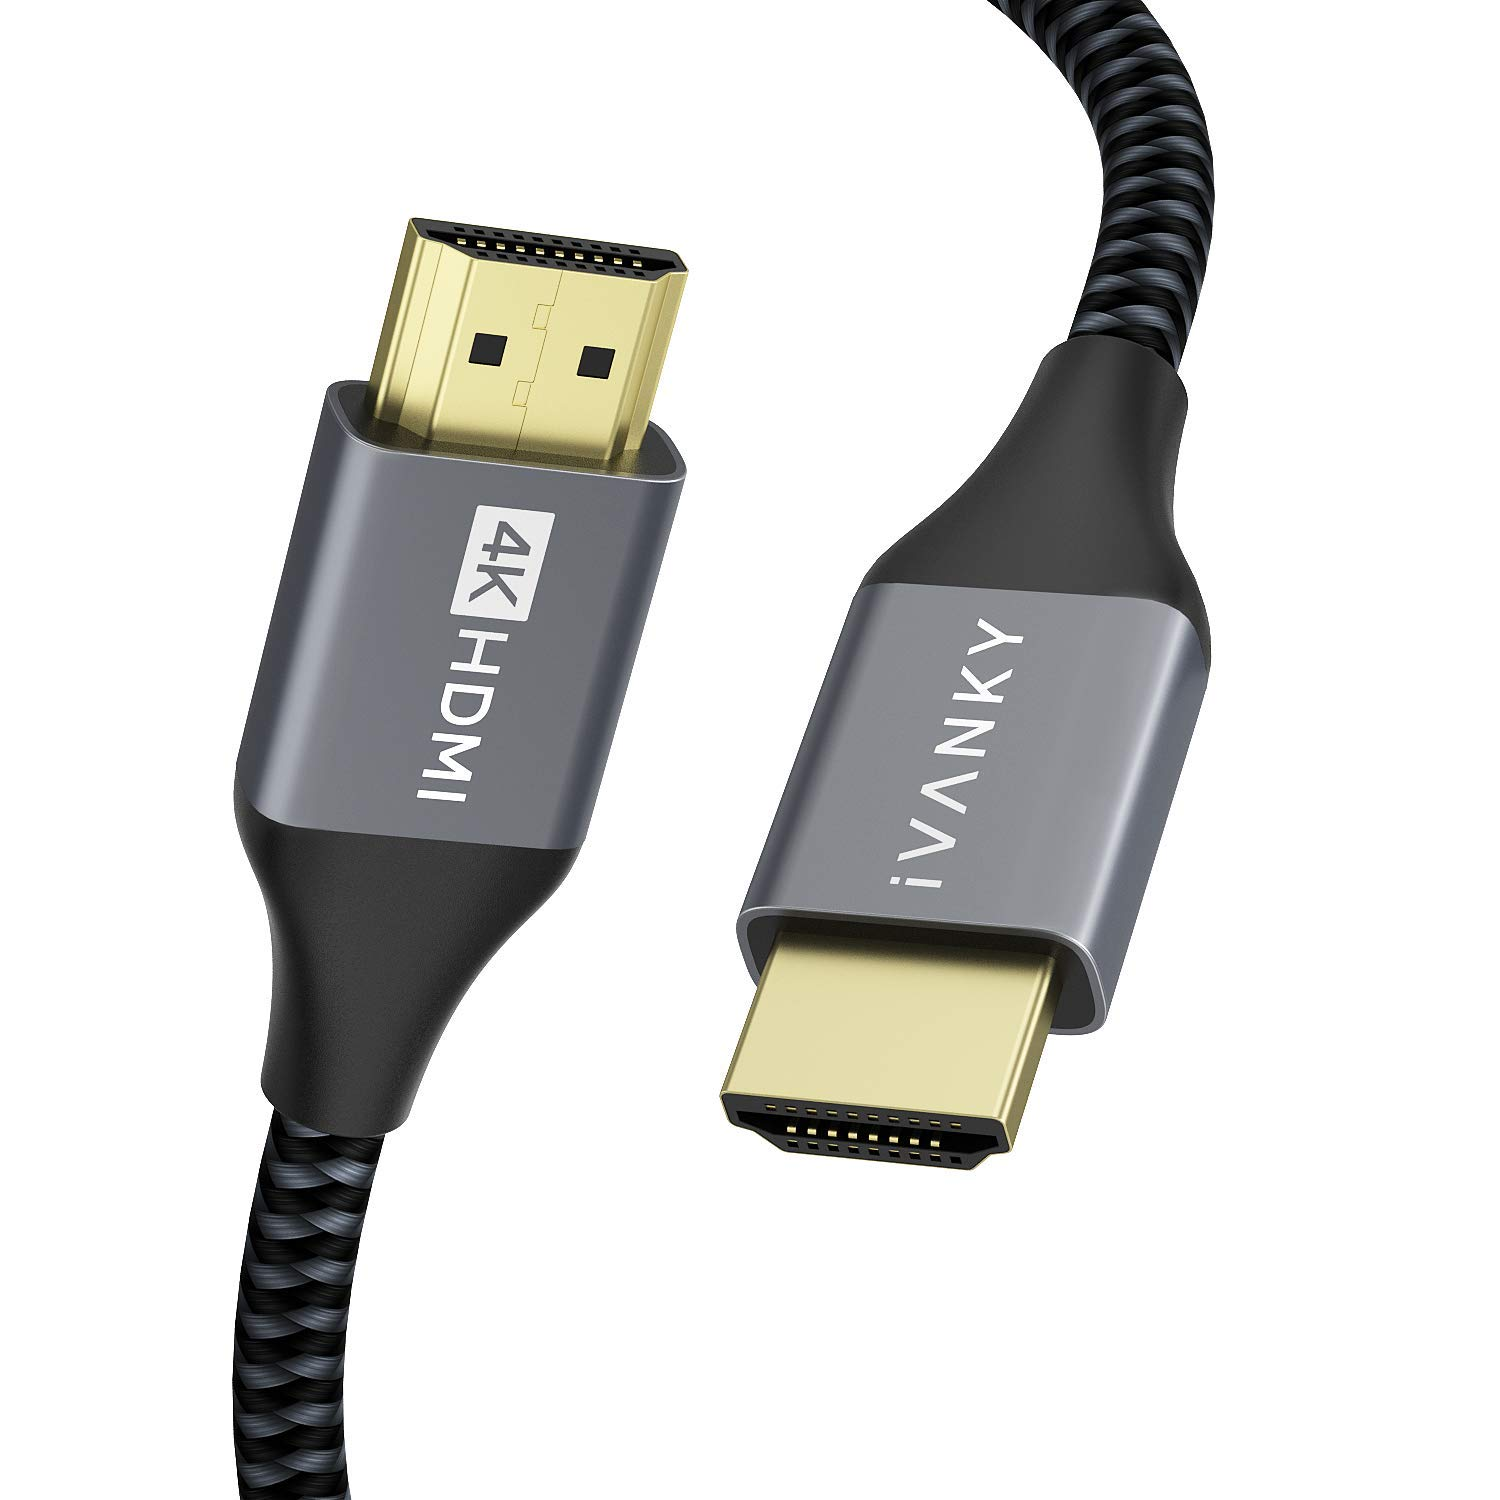 HDMI Cable 4K3.3 ft iVANKY Sale special price High quality Speed 60Hz 2.0